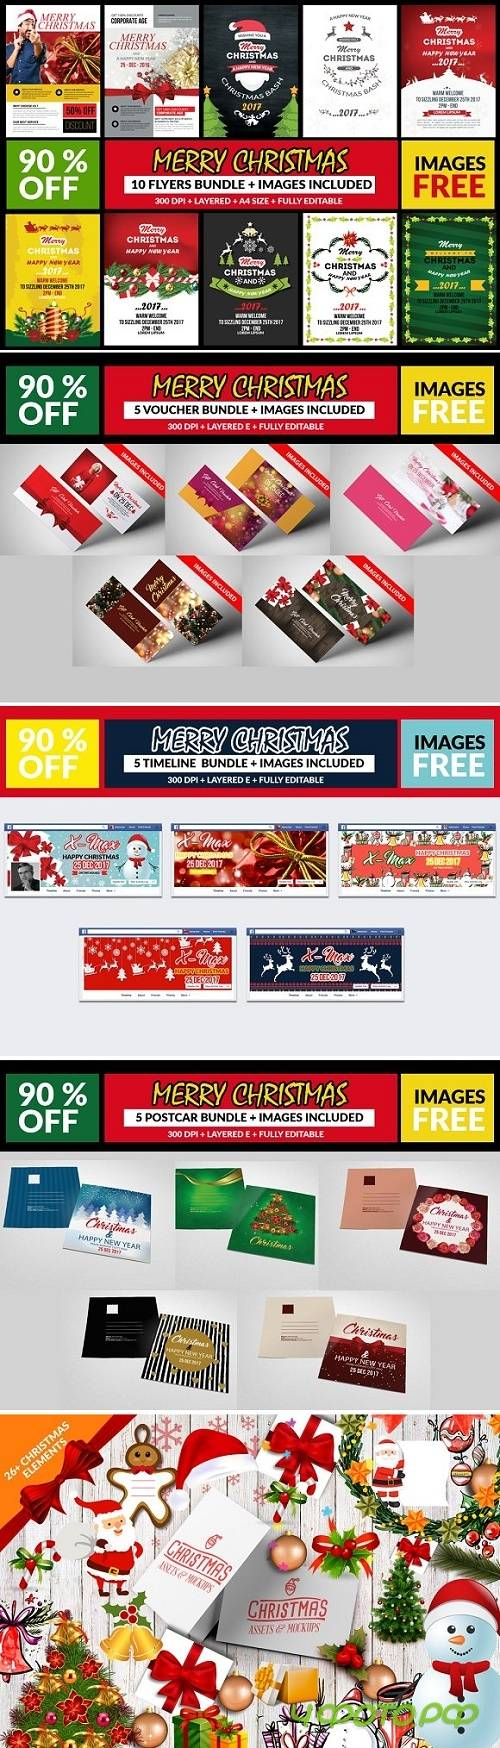 25 Christmas Templates + 26 Elements - 1002906